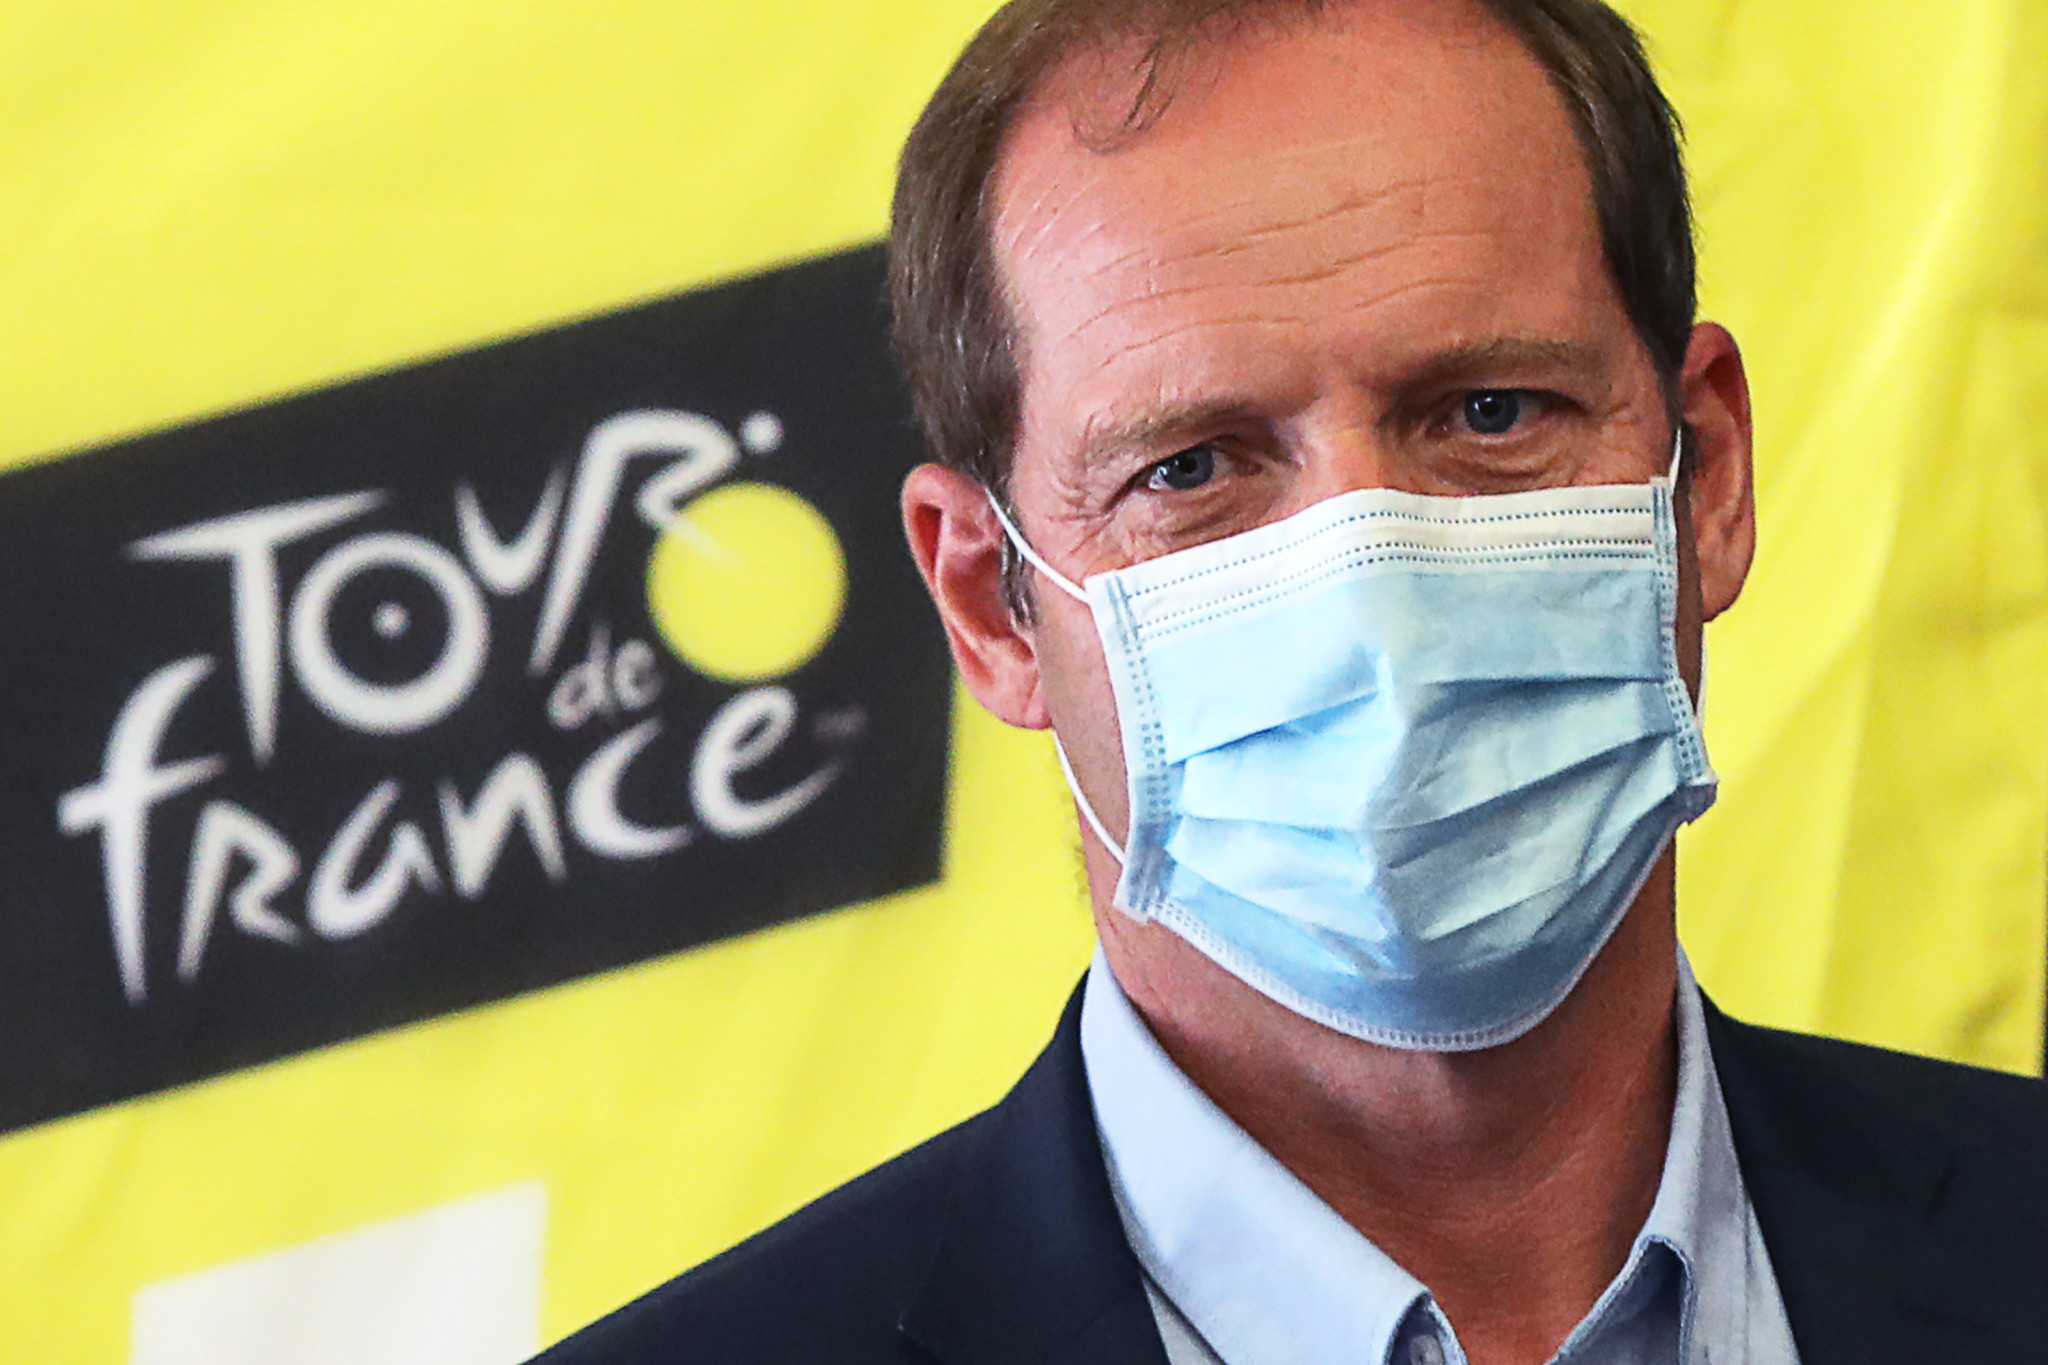 Tour de France race director tests positive for coronavirus as Bennett clinches maiden stage win